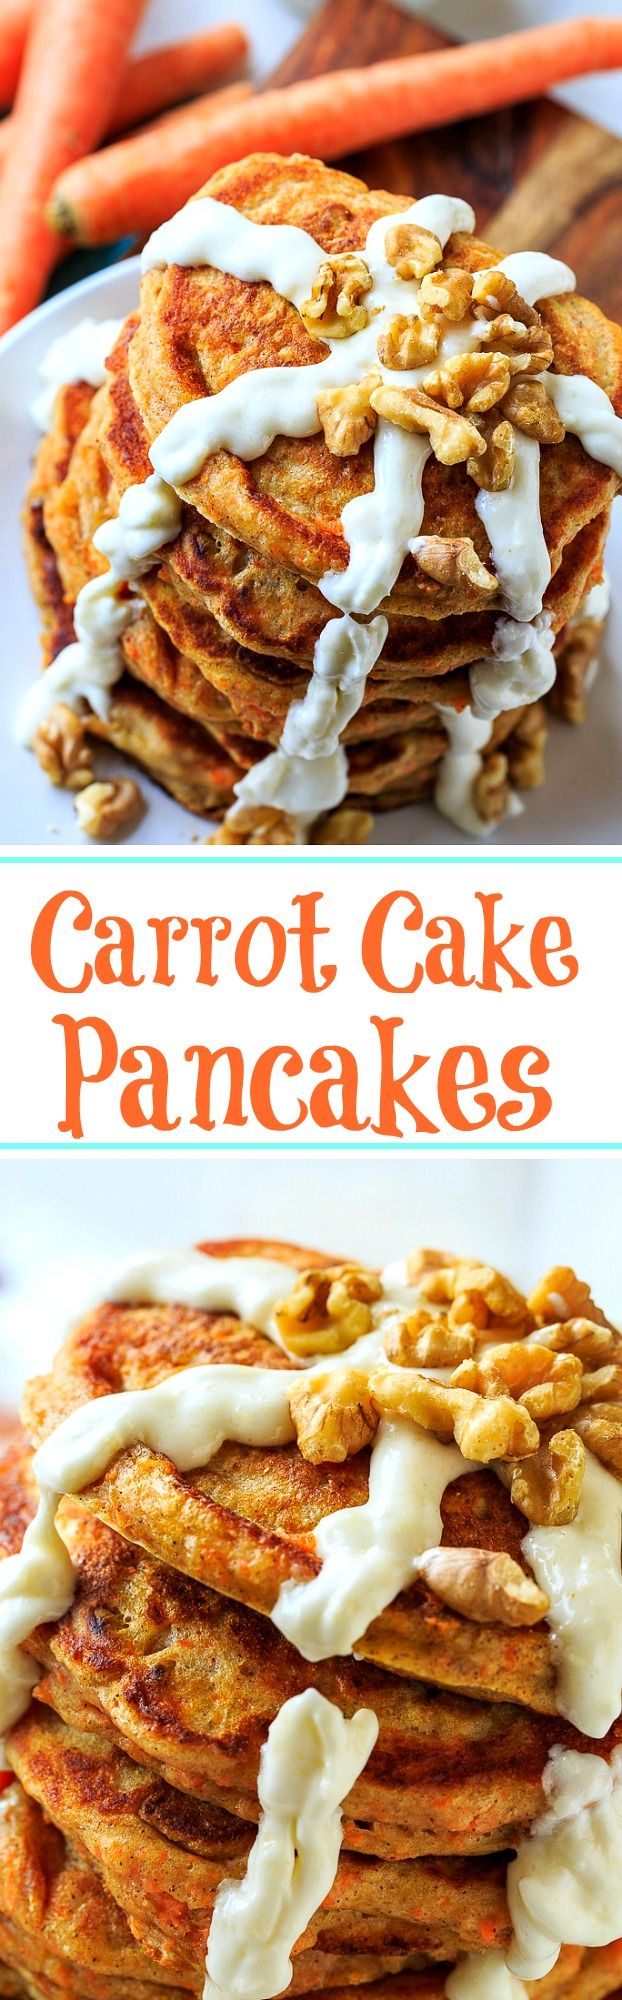 Carrot Cake Pancakes with Cream Cheese Glaze and toasted walnuts.